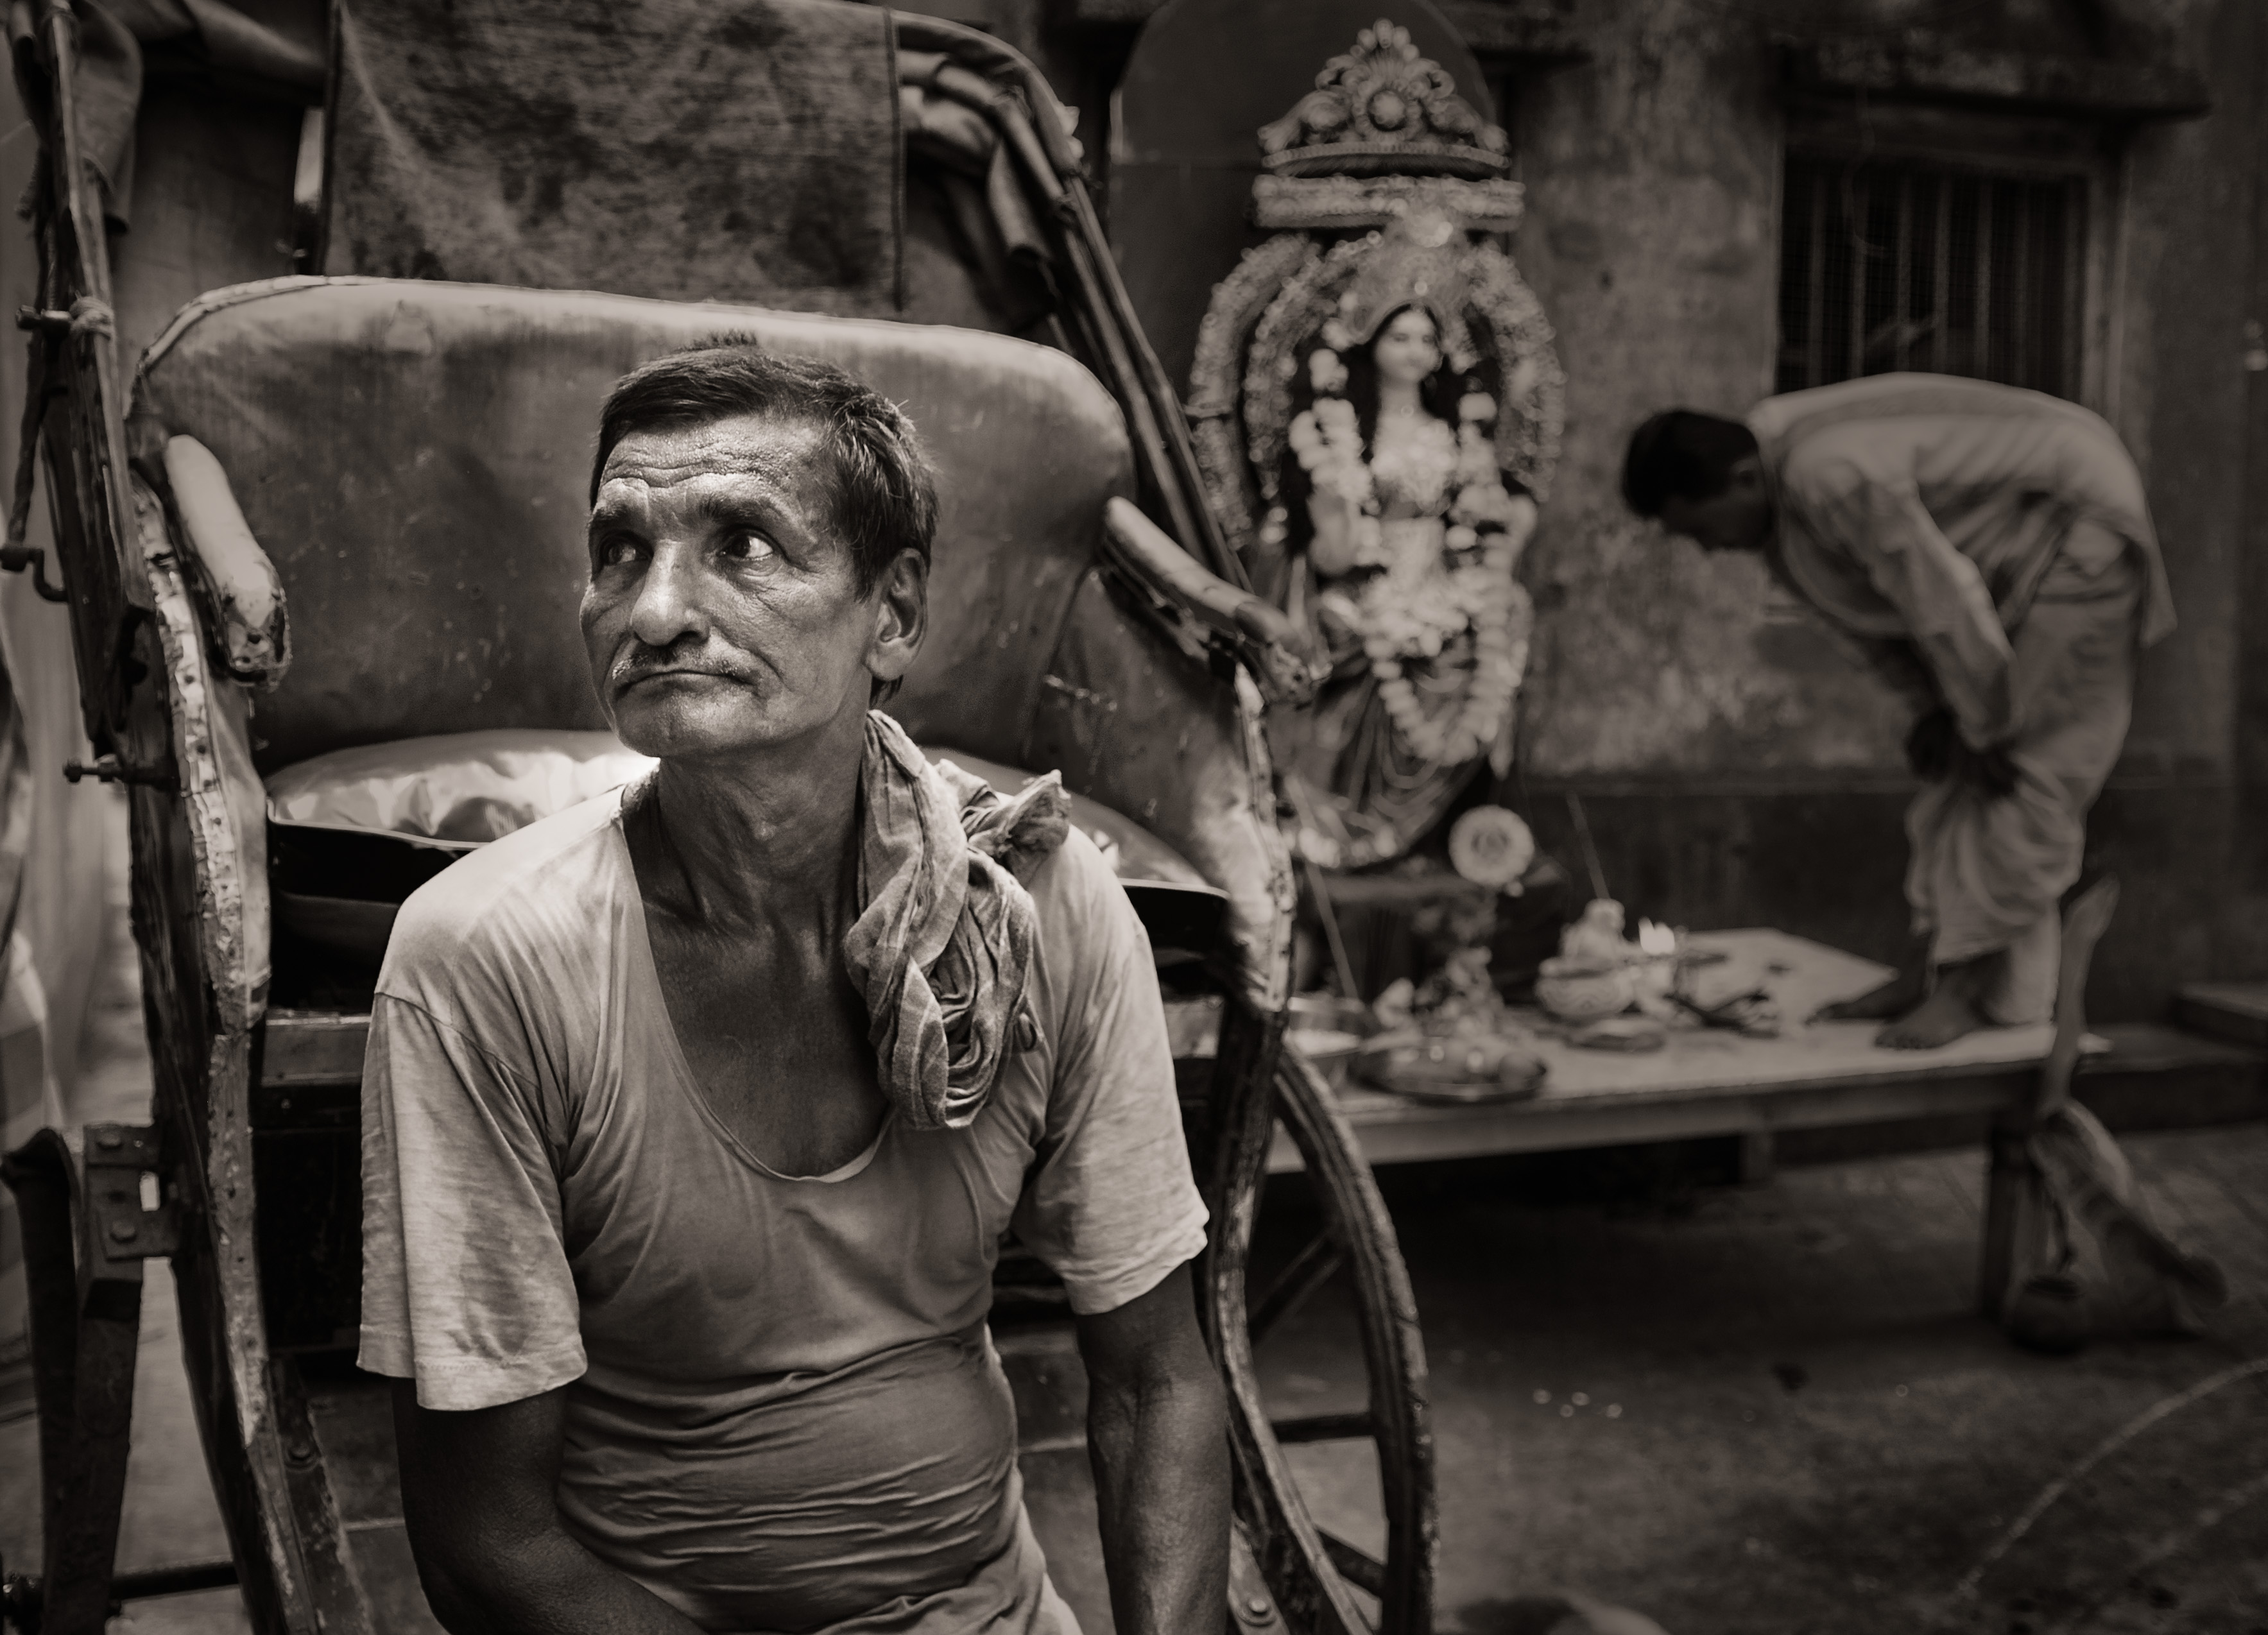 a Rickshaw Puller - Calcutta, India